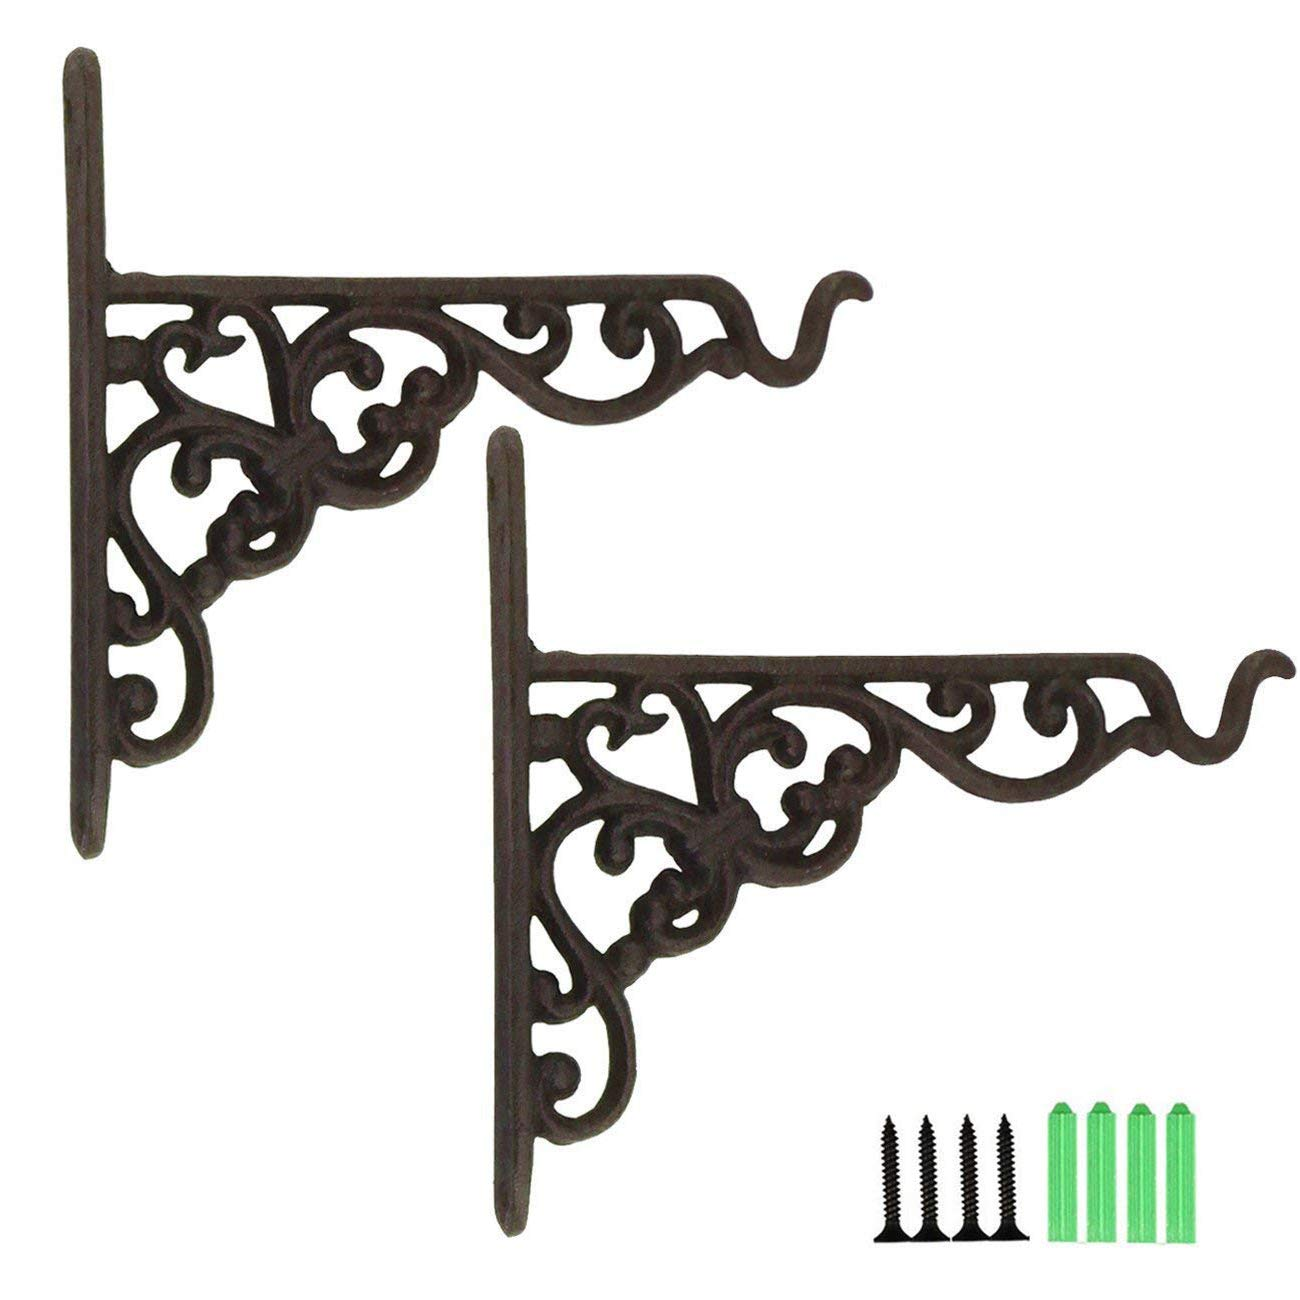 TinaWood 2PCS 6.9'' x 8.1'' Cast Iron Hanging Basket Vintage Wall Hook with Screws/Decorative Plant Hanger For Bird Feeders, Planters, Lanterns, Wind Chimes, As Wall Brackets and More! (2) by TinaWood